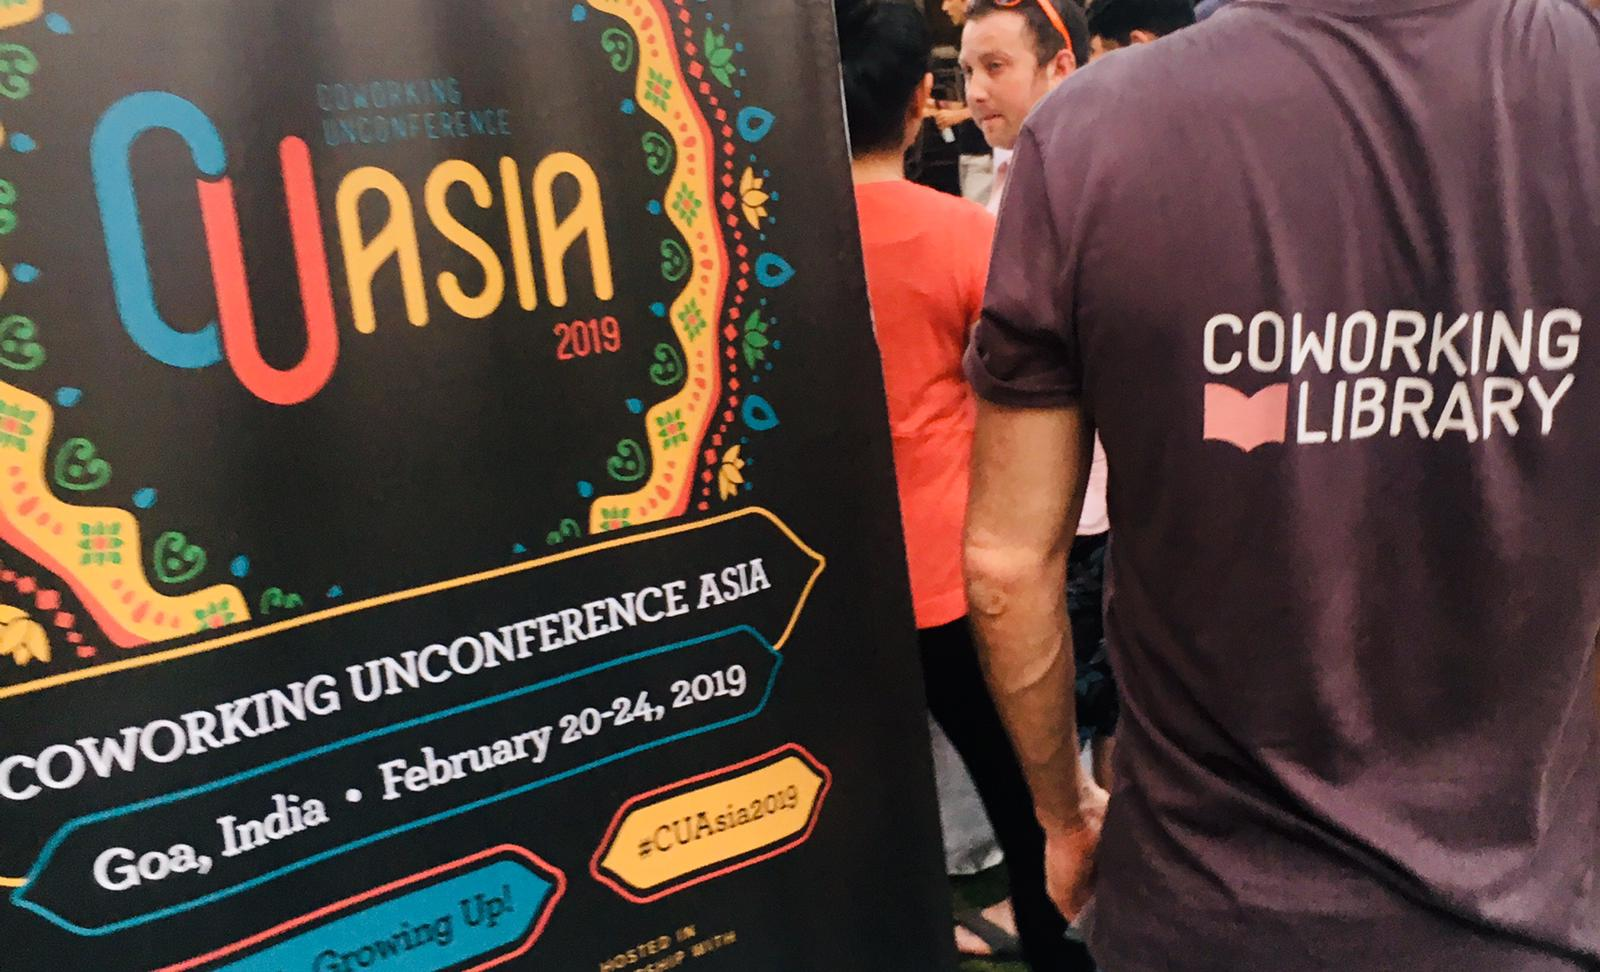 Banner of CU Asia 2019 and Carsten from behind with the Coworking Library Logo on his shirt